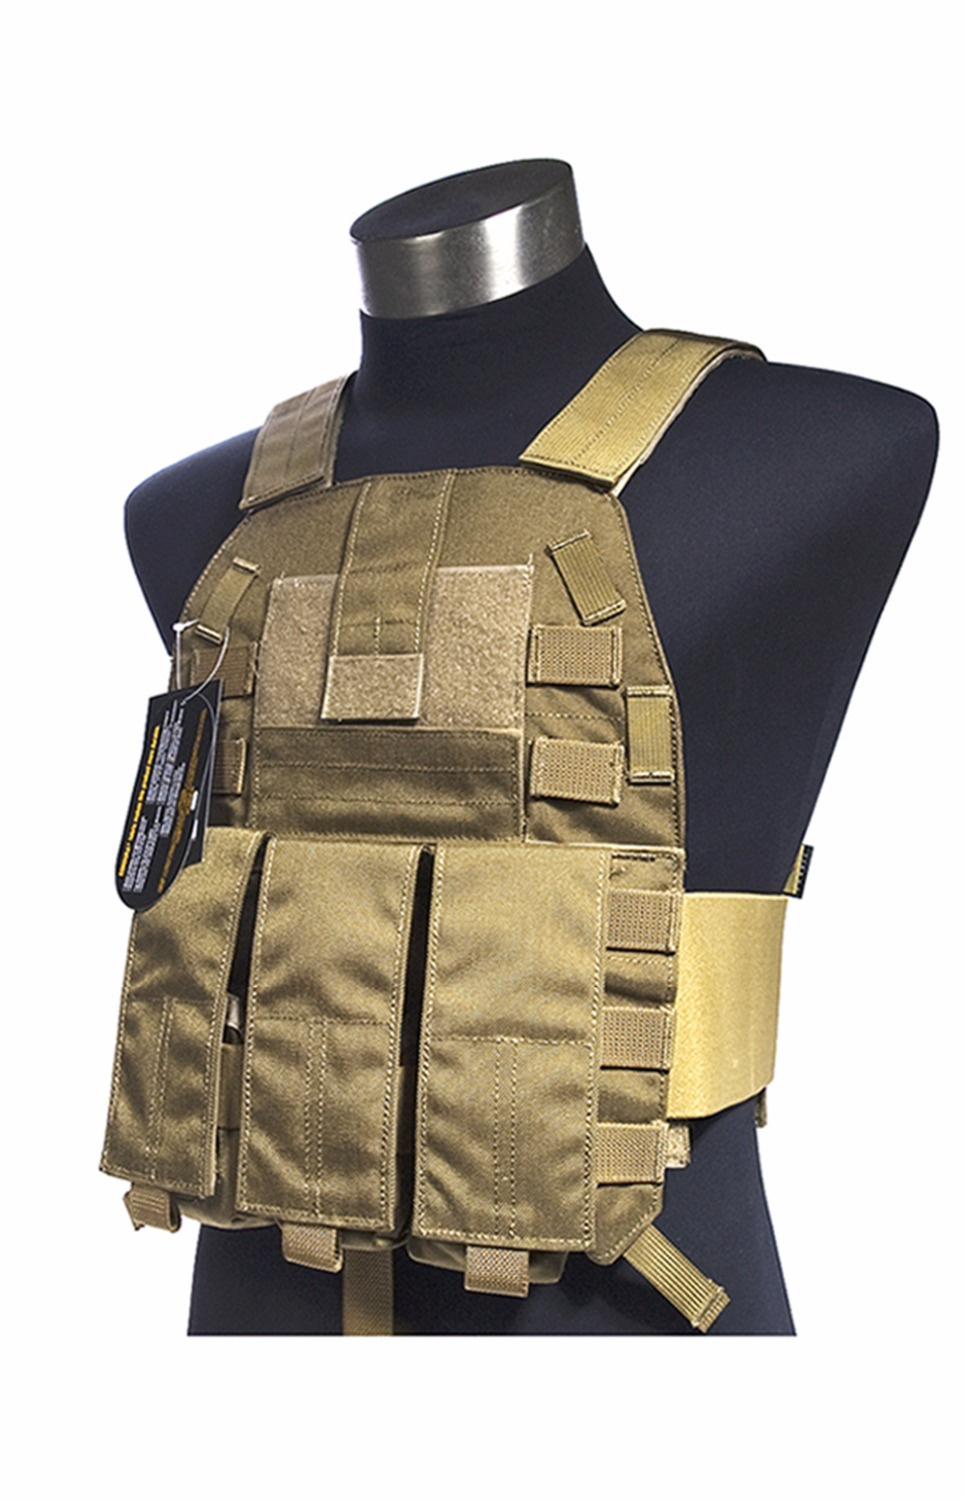 MILITECH Mil Spec Military LT6094K Coyote Brown CB Plate Carrier Combat Molle Tactical Vest Army Military Combat Vests Carrier pt01w 22 21s 341 circular mil spec mr li